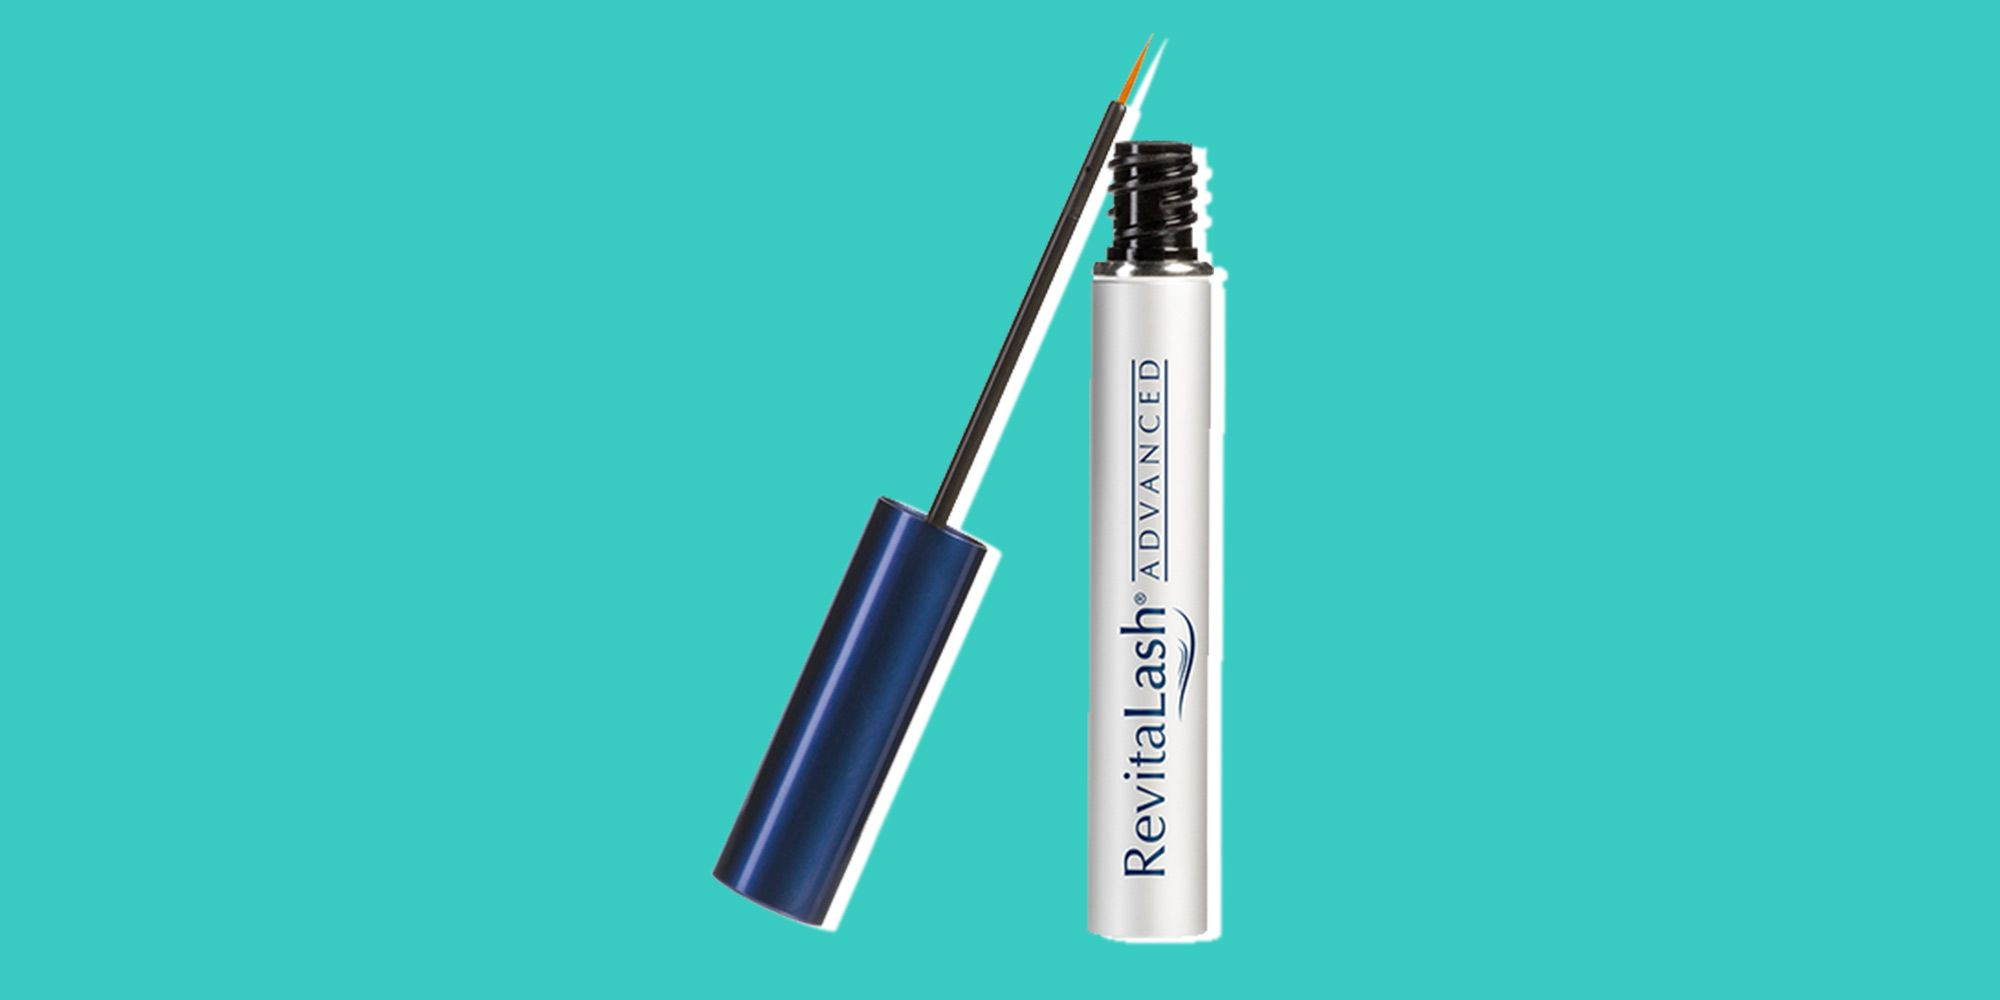 5 Of The Best Lash And Brow Serums Best Serums For Lash And Brow